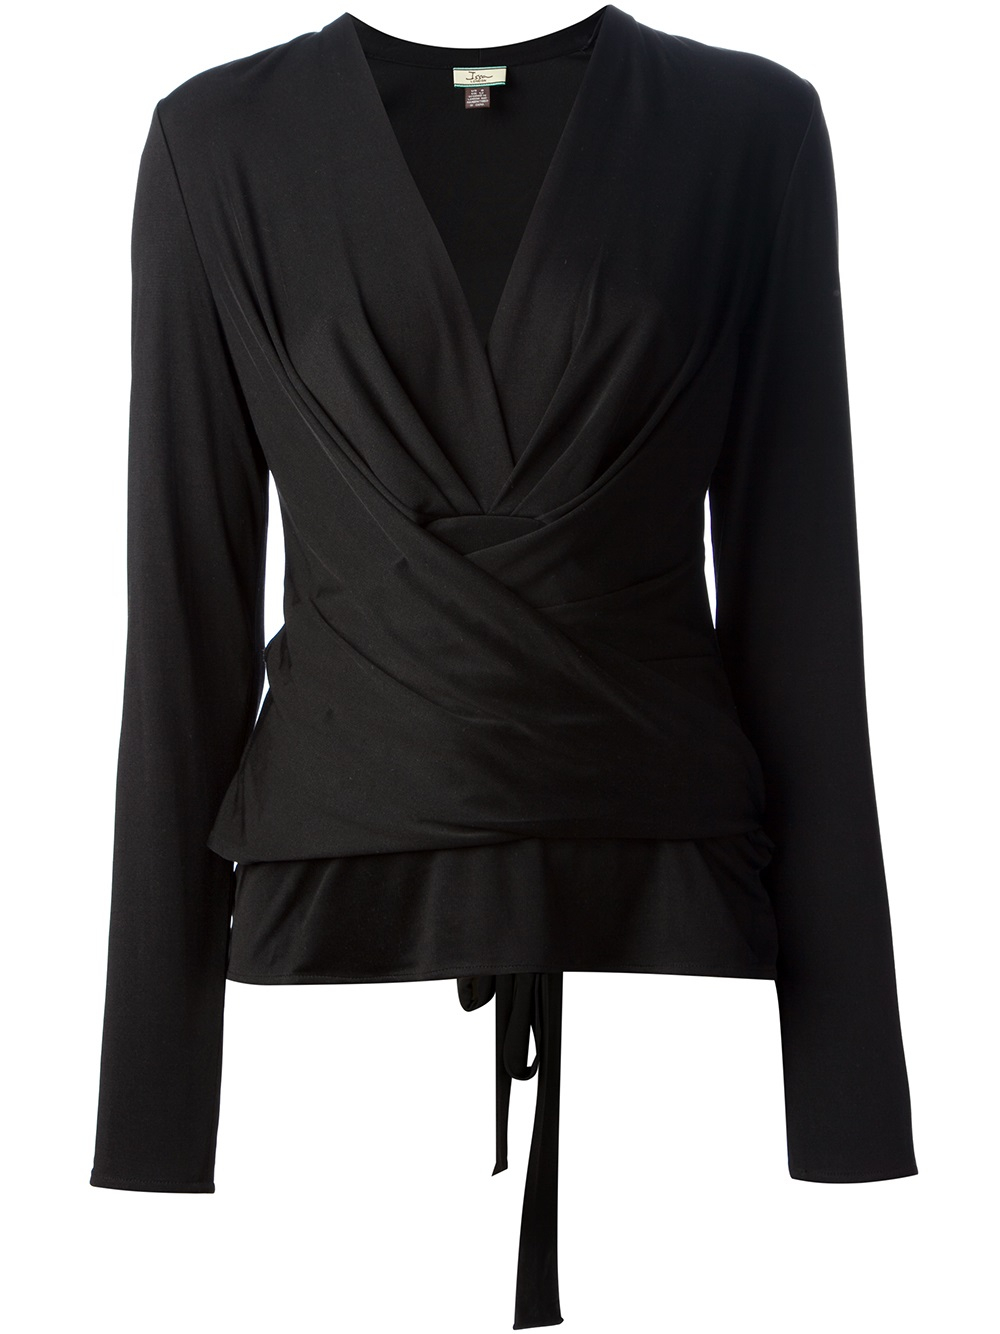 Issa Wrap Cardigan in Black | Lyst